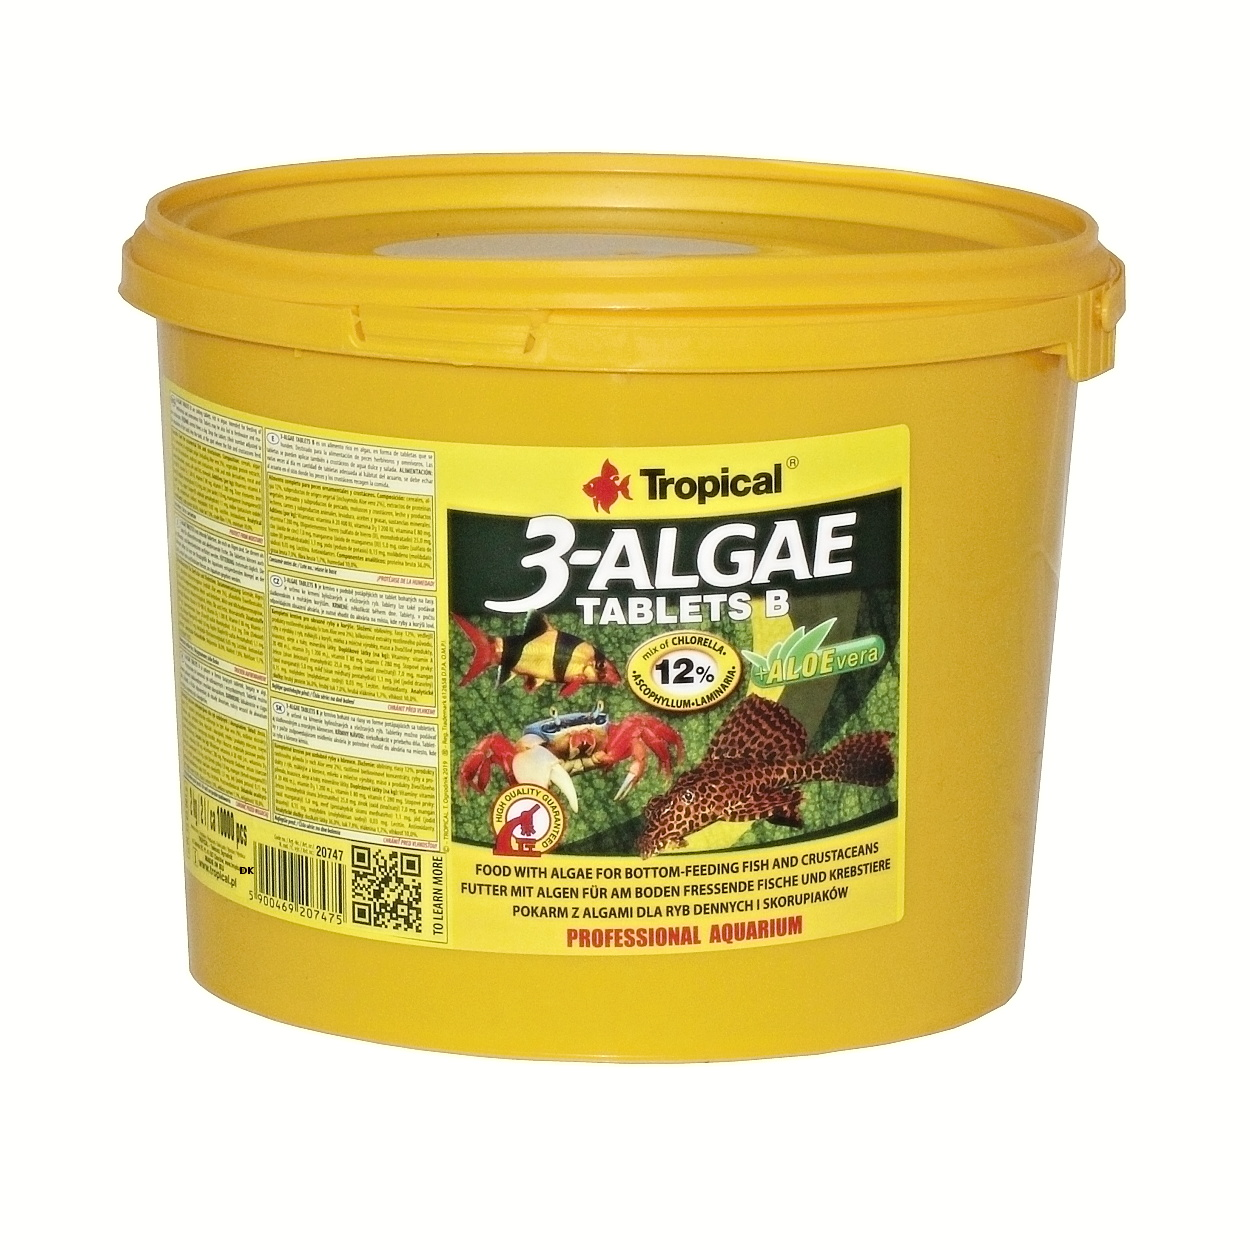 Tropical 3-Algae Tablets B - 2 Kg